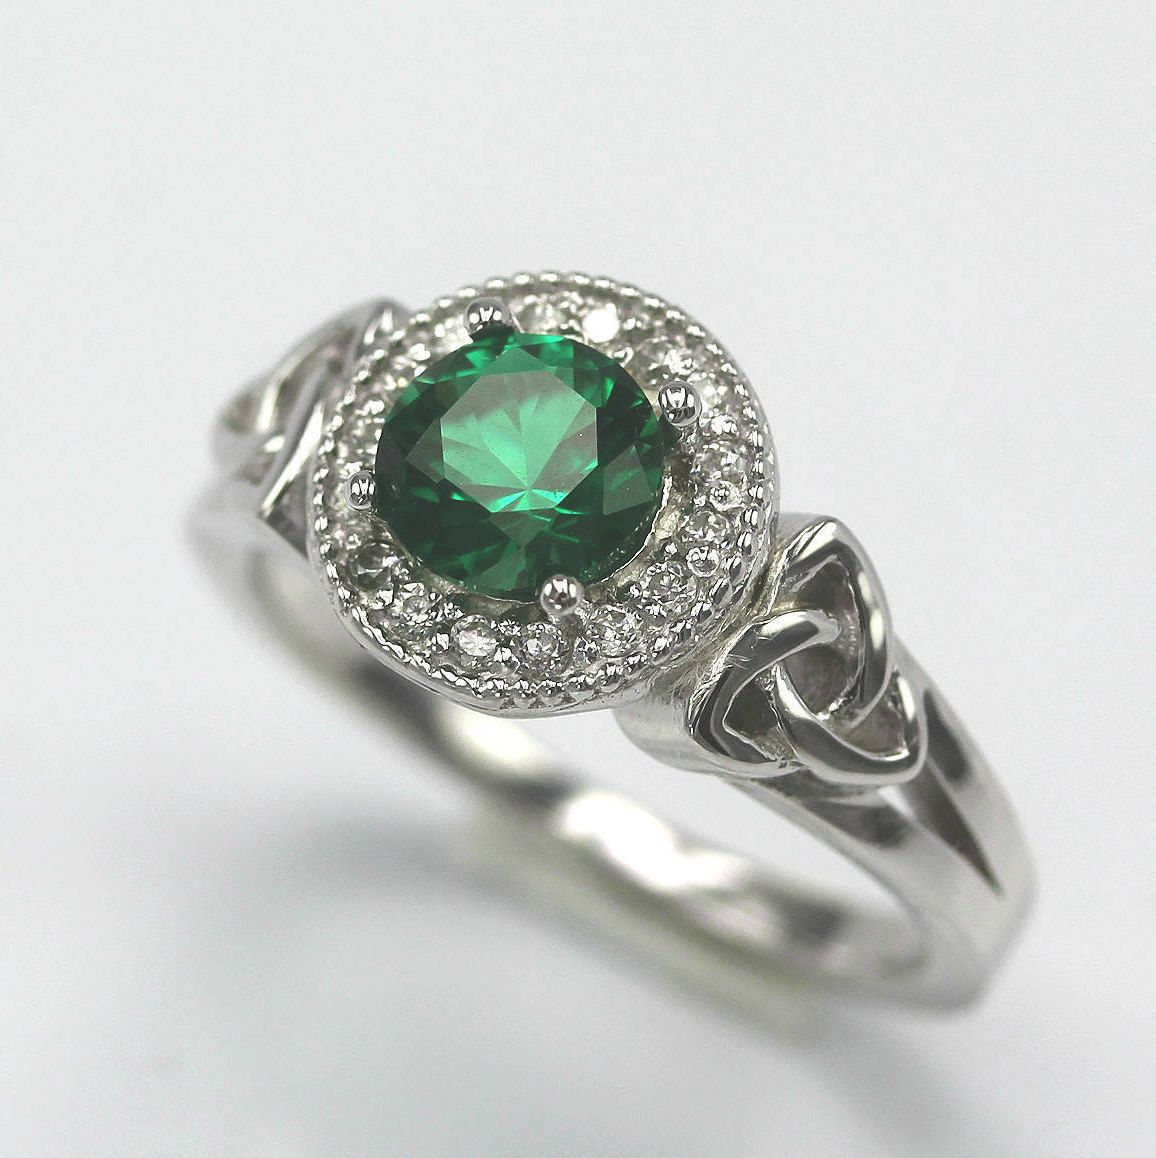 Celtic Orla Sterling Silver Engagement Ring With 1 0ct Emerald And Diamond Stimulants Wedding Anniversary Love And Friendship Promise Celtic Wedding Rings Fashion Rings Sterling Silver Engagement Rings